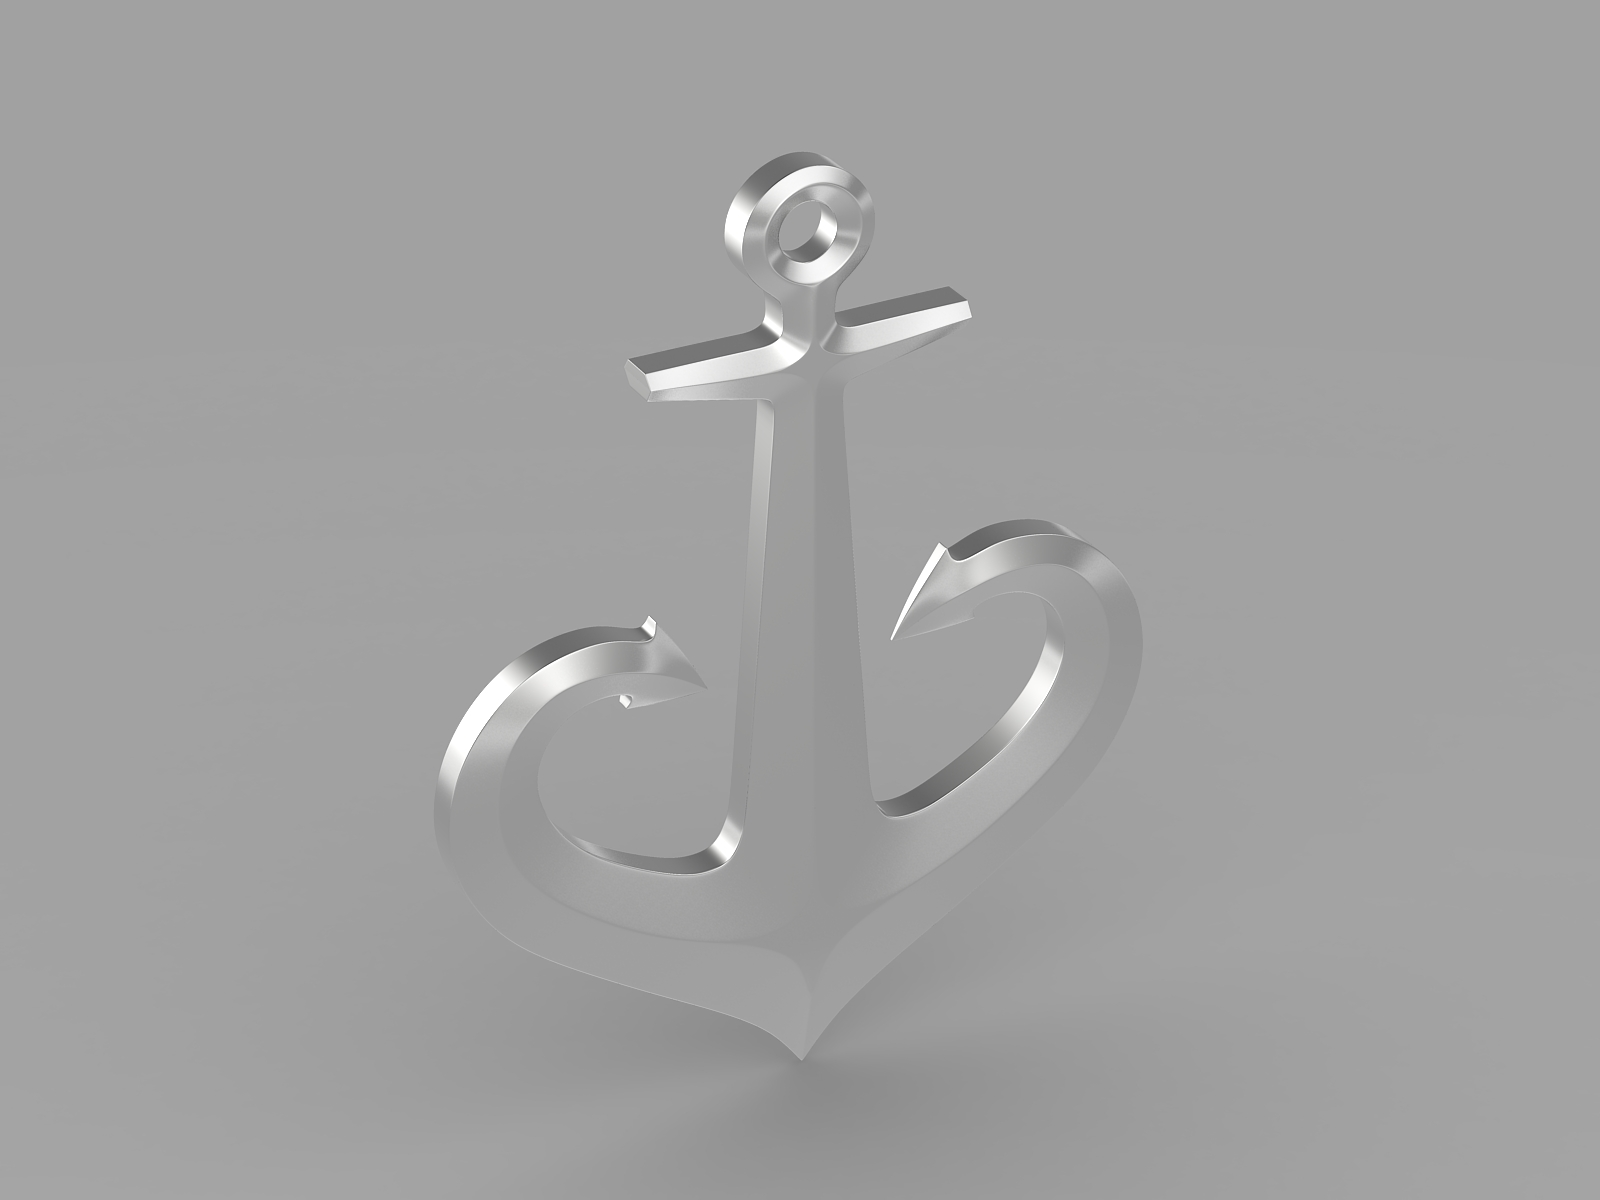 Anchor 1 3d model 3ds fbx c4d lwo lws lw ma mb  obj 223617